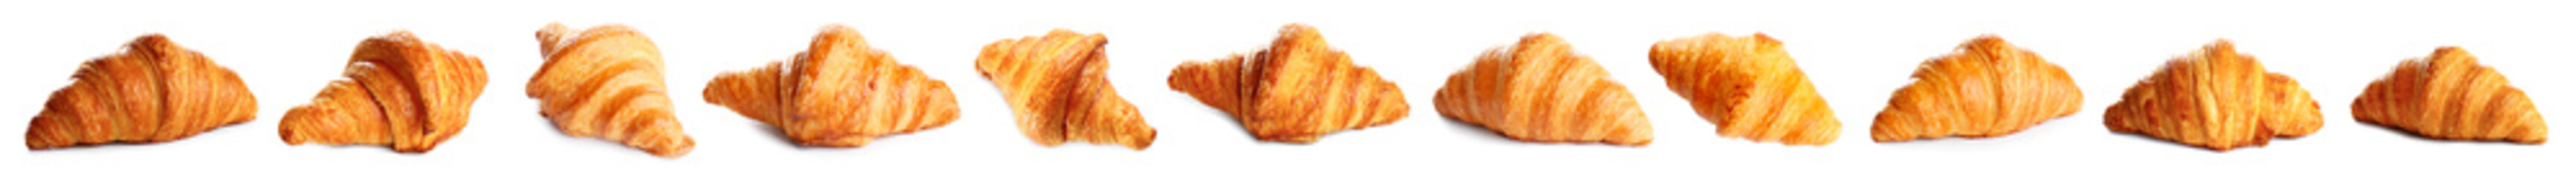 Set of delicious fresh baked croissants on white background, banner design. French pastry